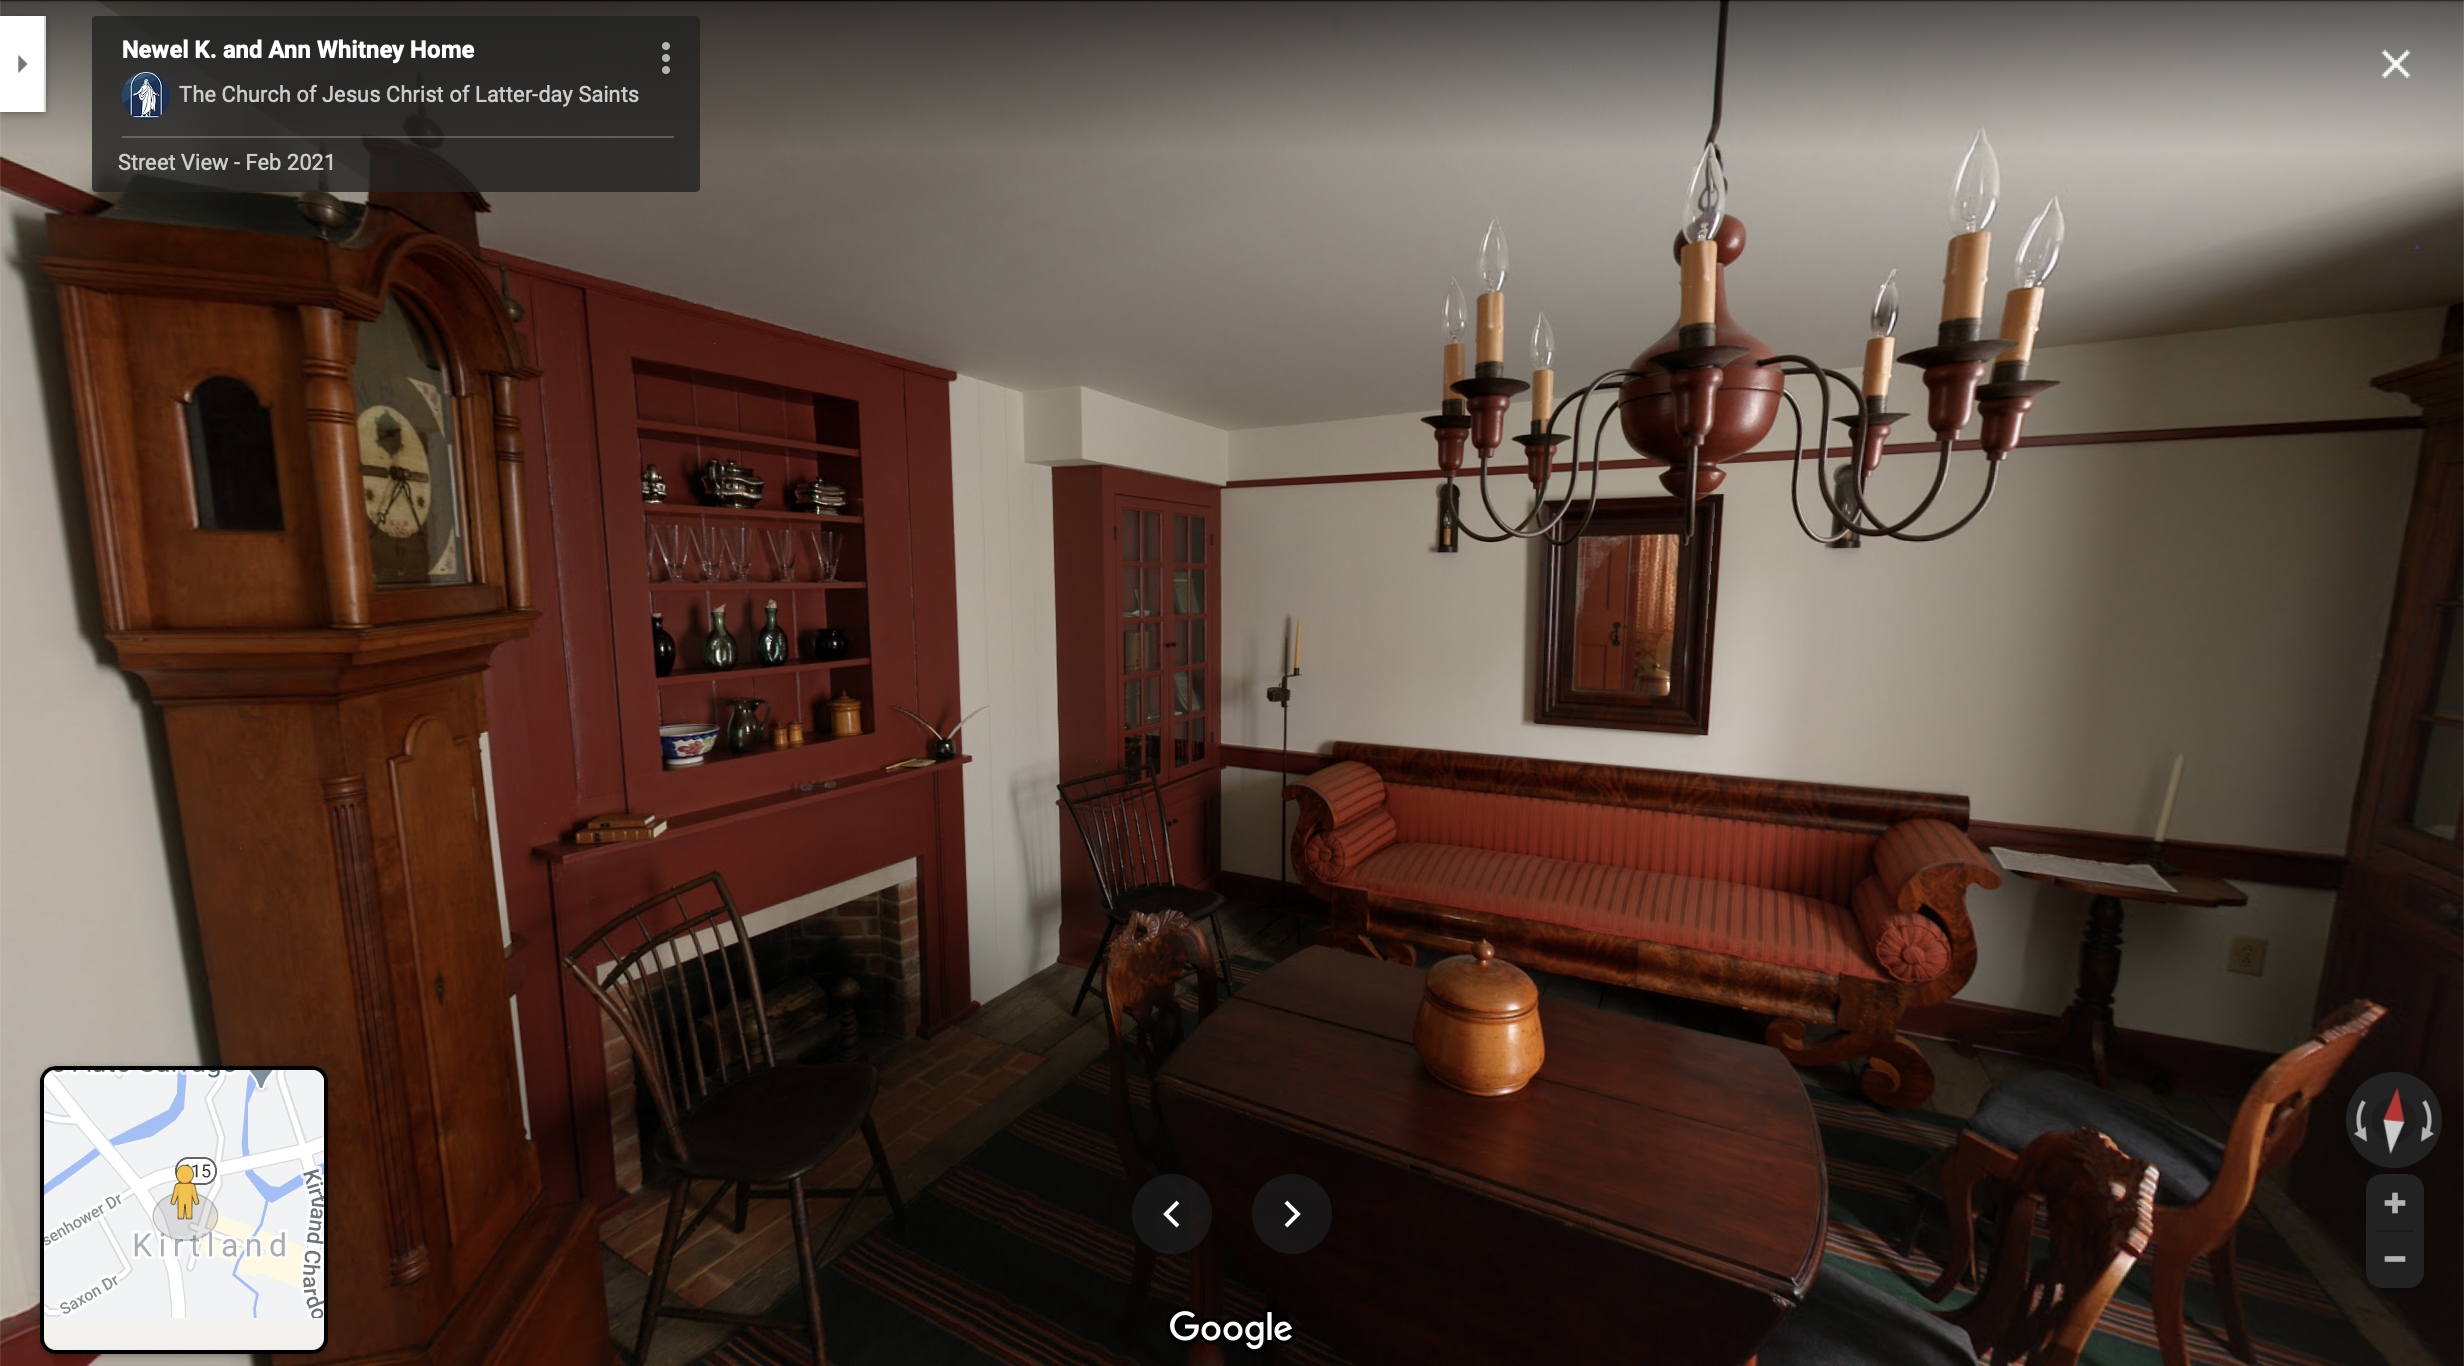 Screenshot of the Google Maps 360 view of the Whitney Home